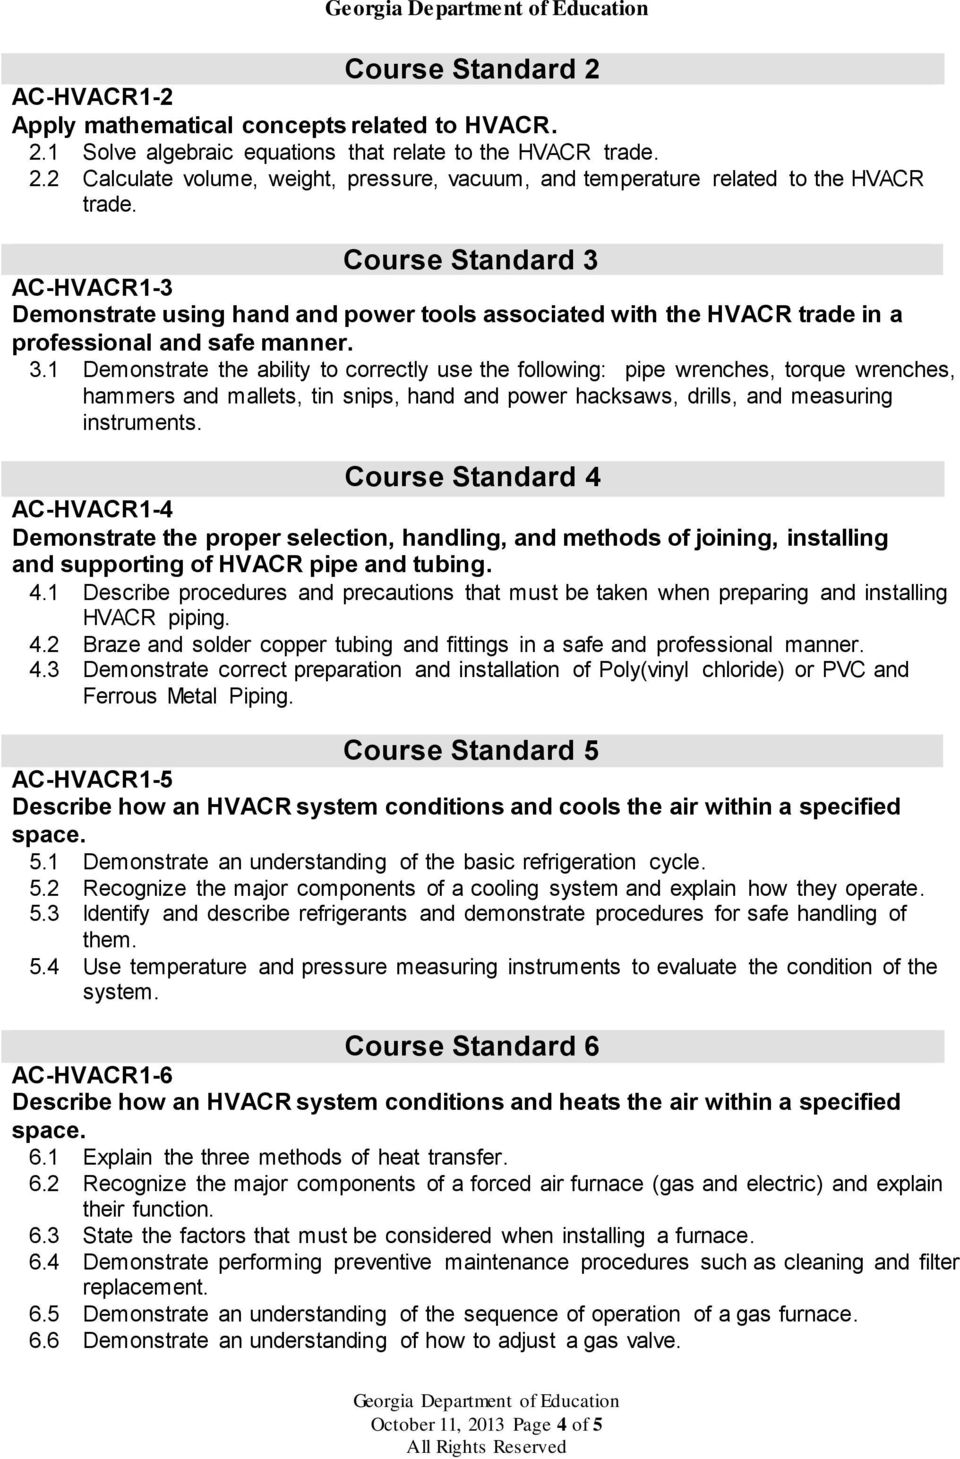 Course Standard 4 AC-HVACR1-4 Demonstrate the proper selection, handling, and methods of joining, installing and supporting of HVACR pipe and tubing. 4.1 Describe procedures and precautions that must be taken when preparing and installing HVACR piping.